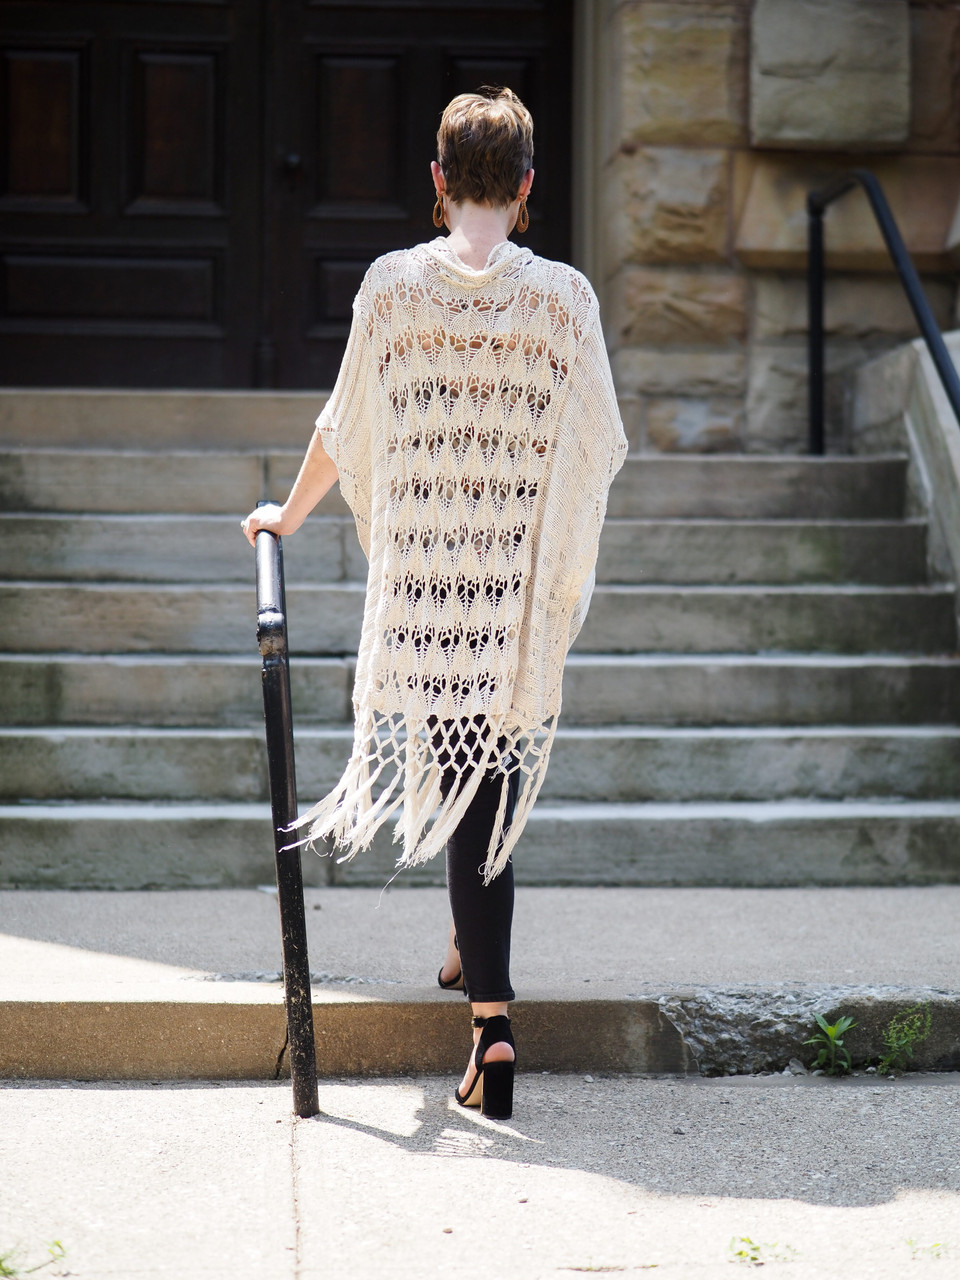 Crocheted Cardigan with Fringe Hem Detail